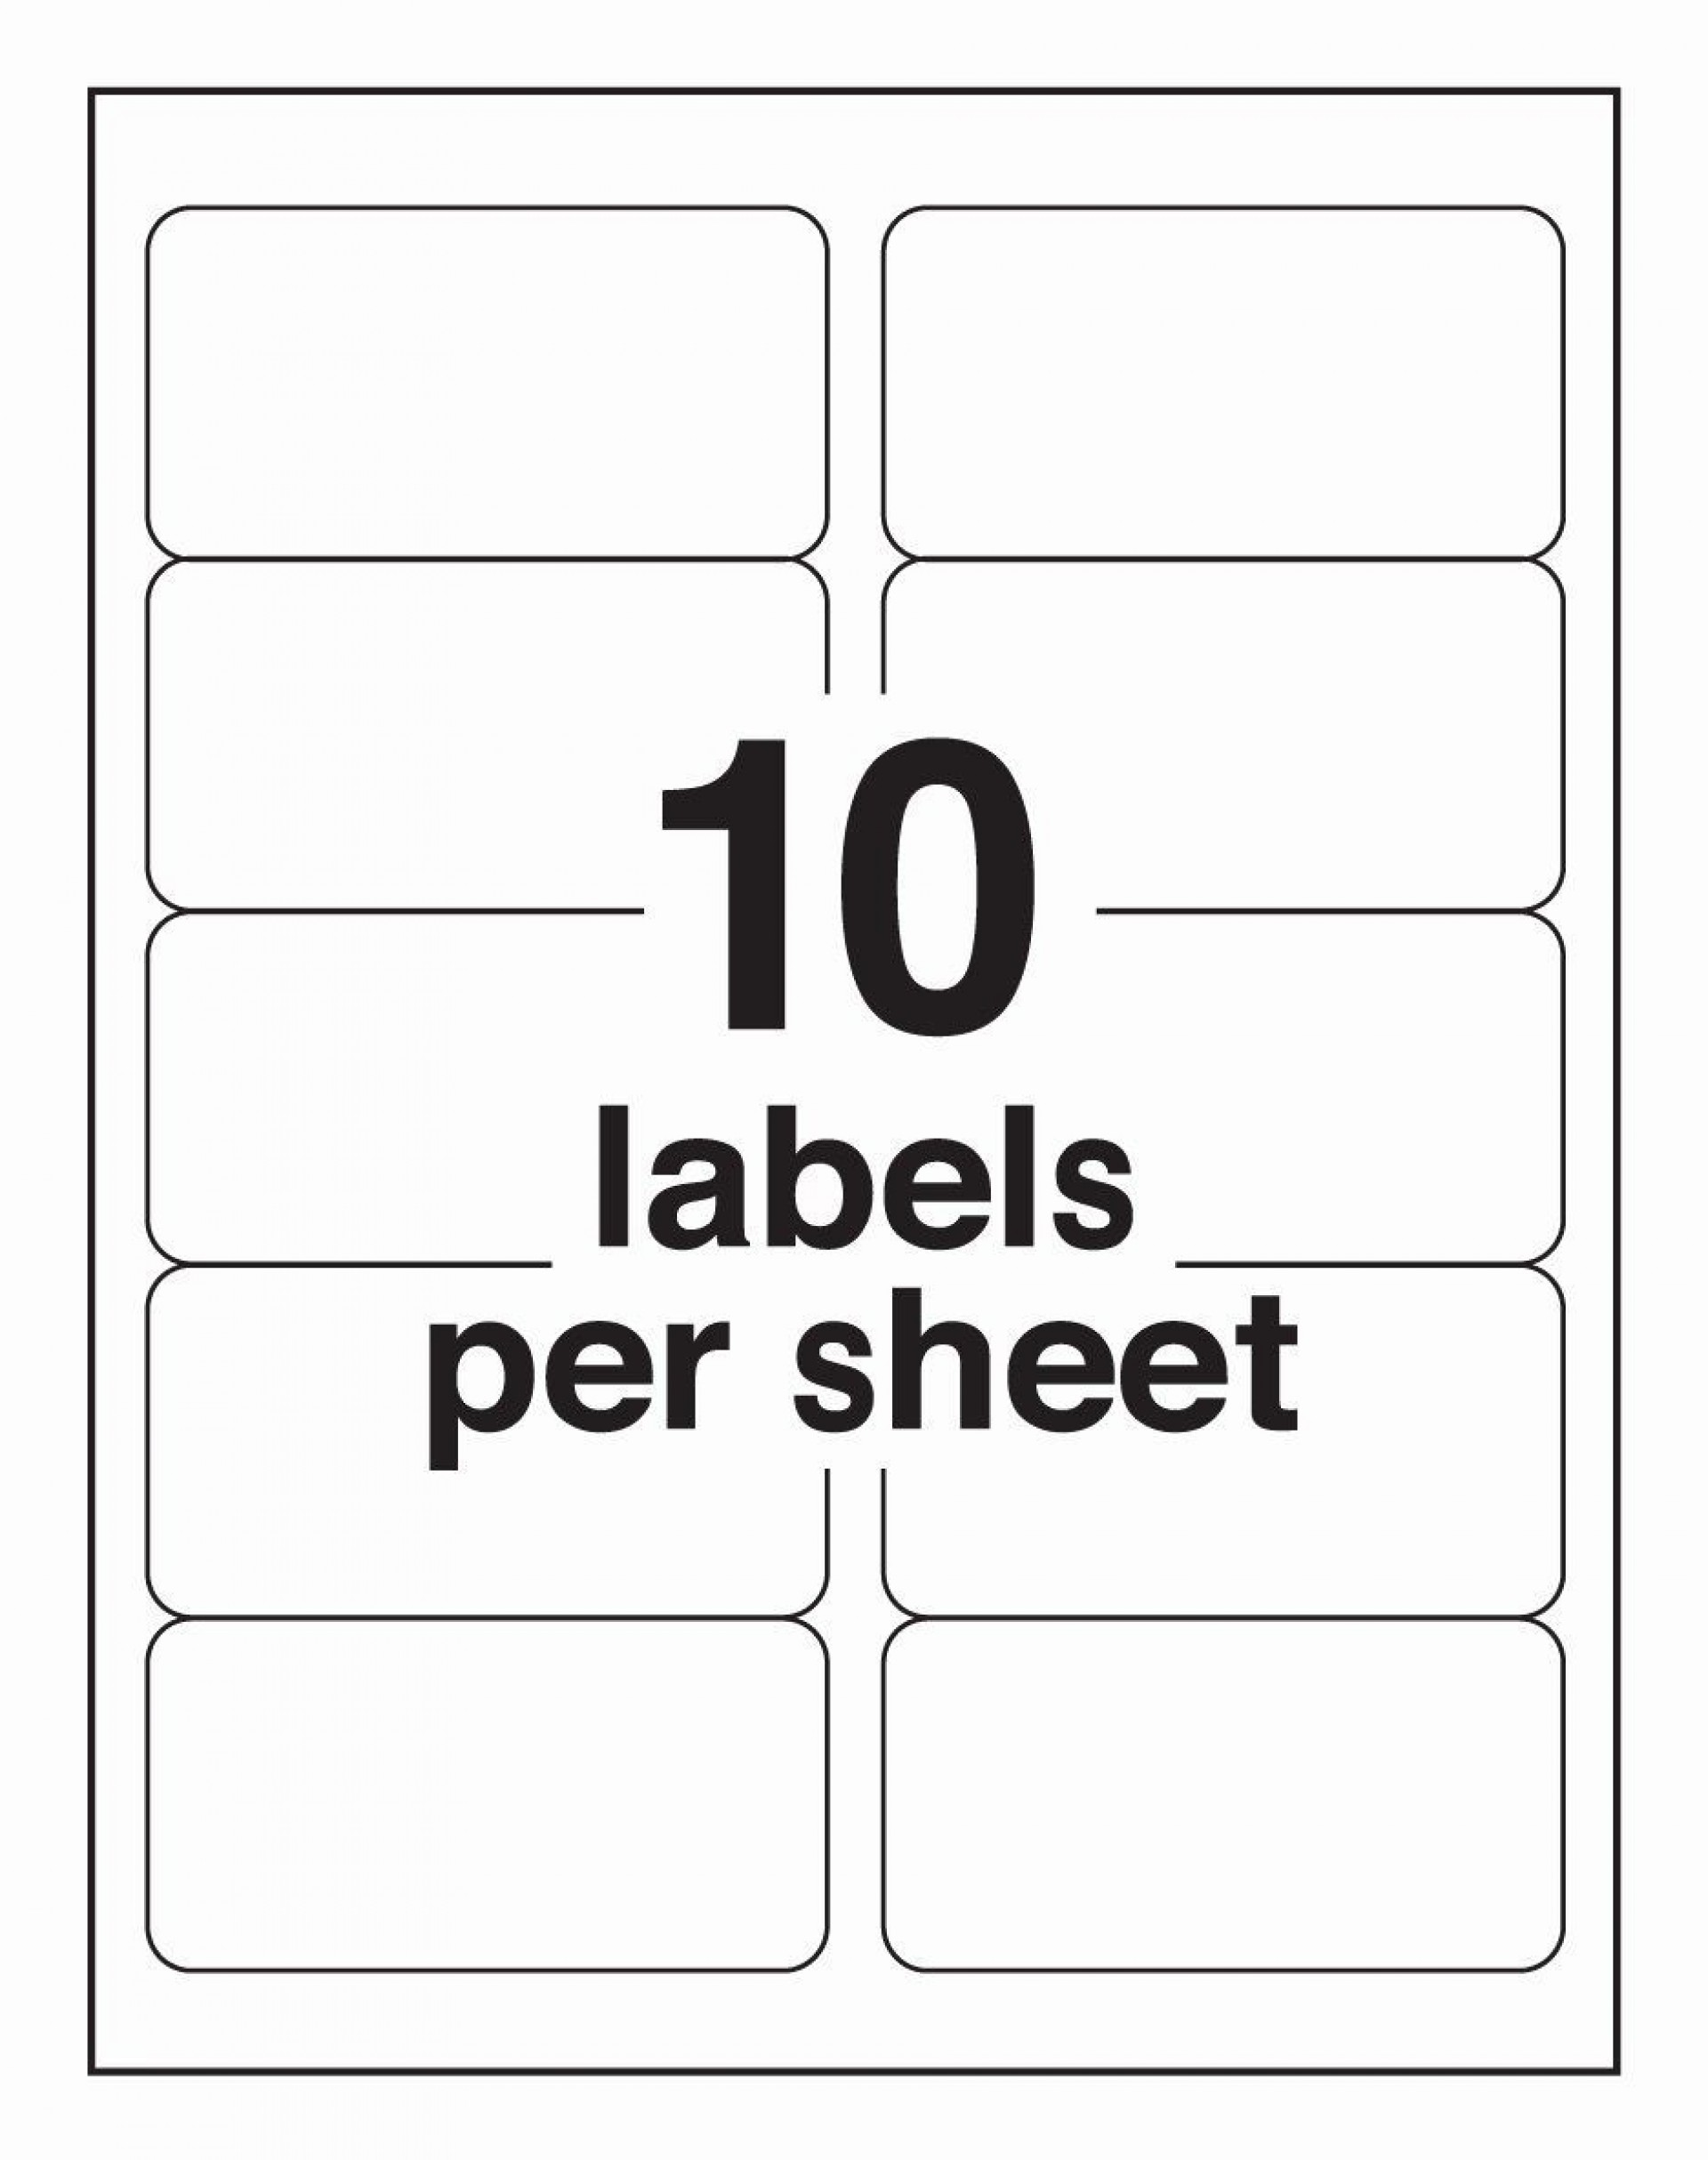 003 Striking Free Mail Label Template High Def  Printable Addres 1 X 2 5 8 For Word Download1920